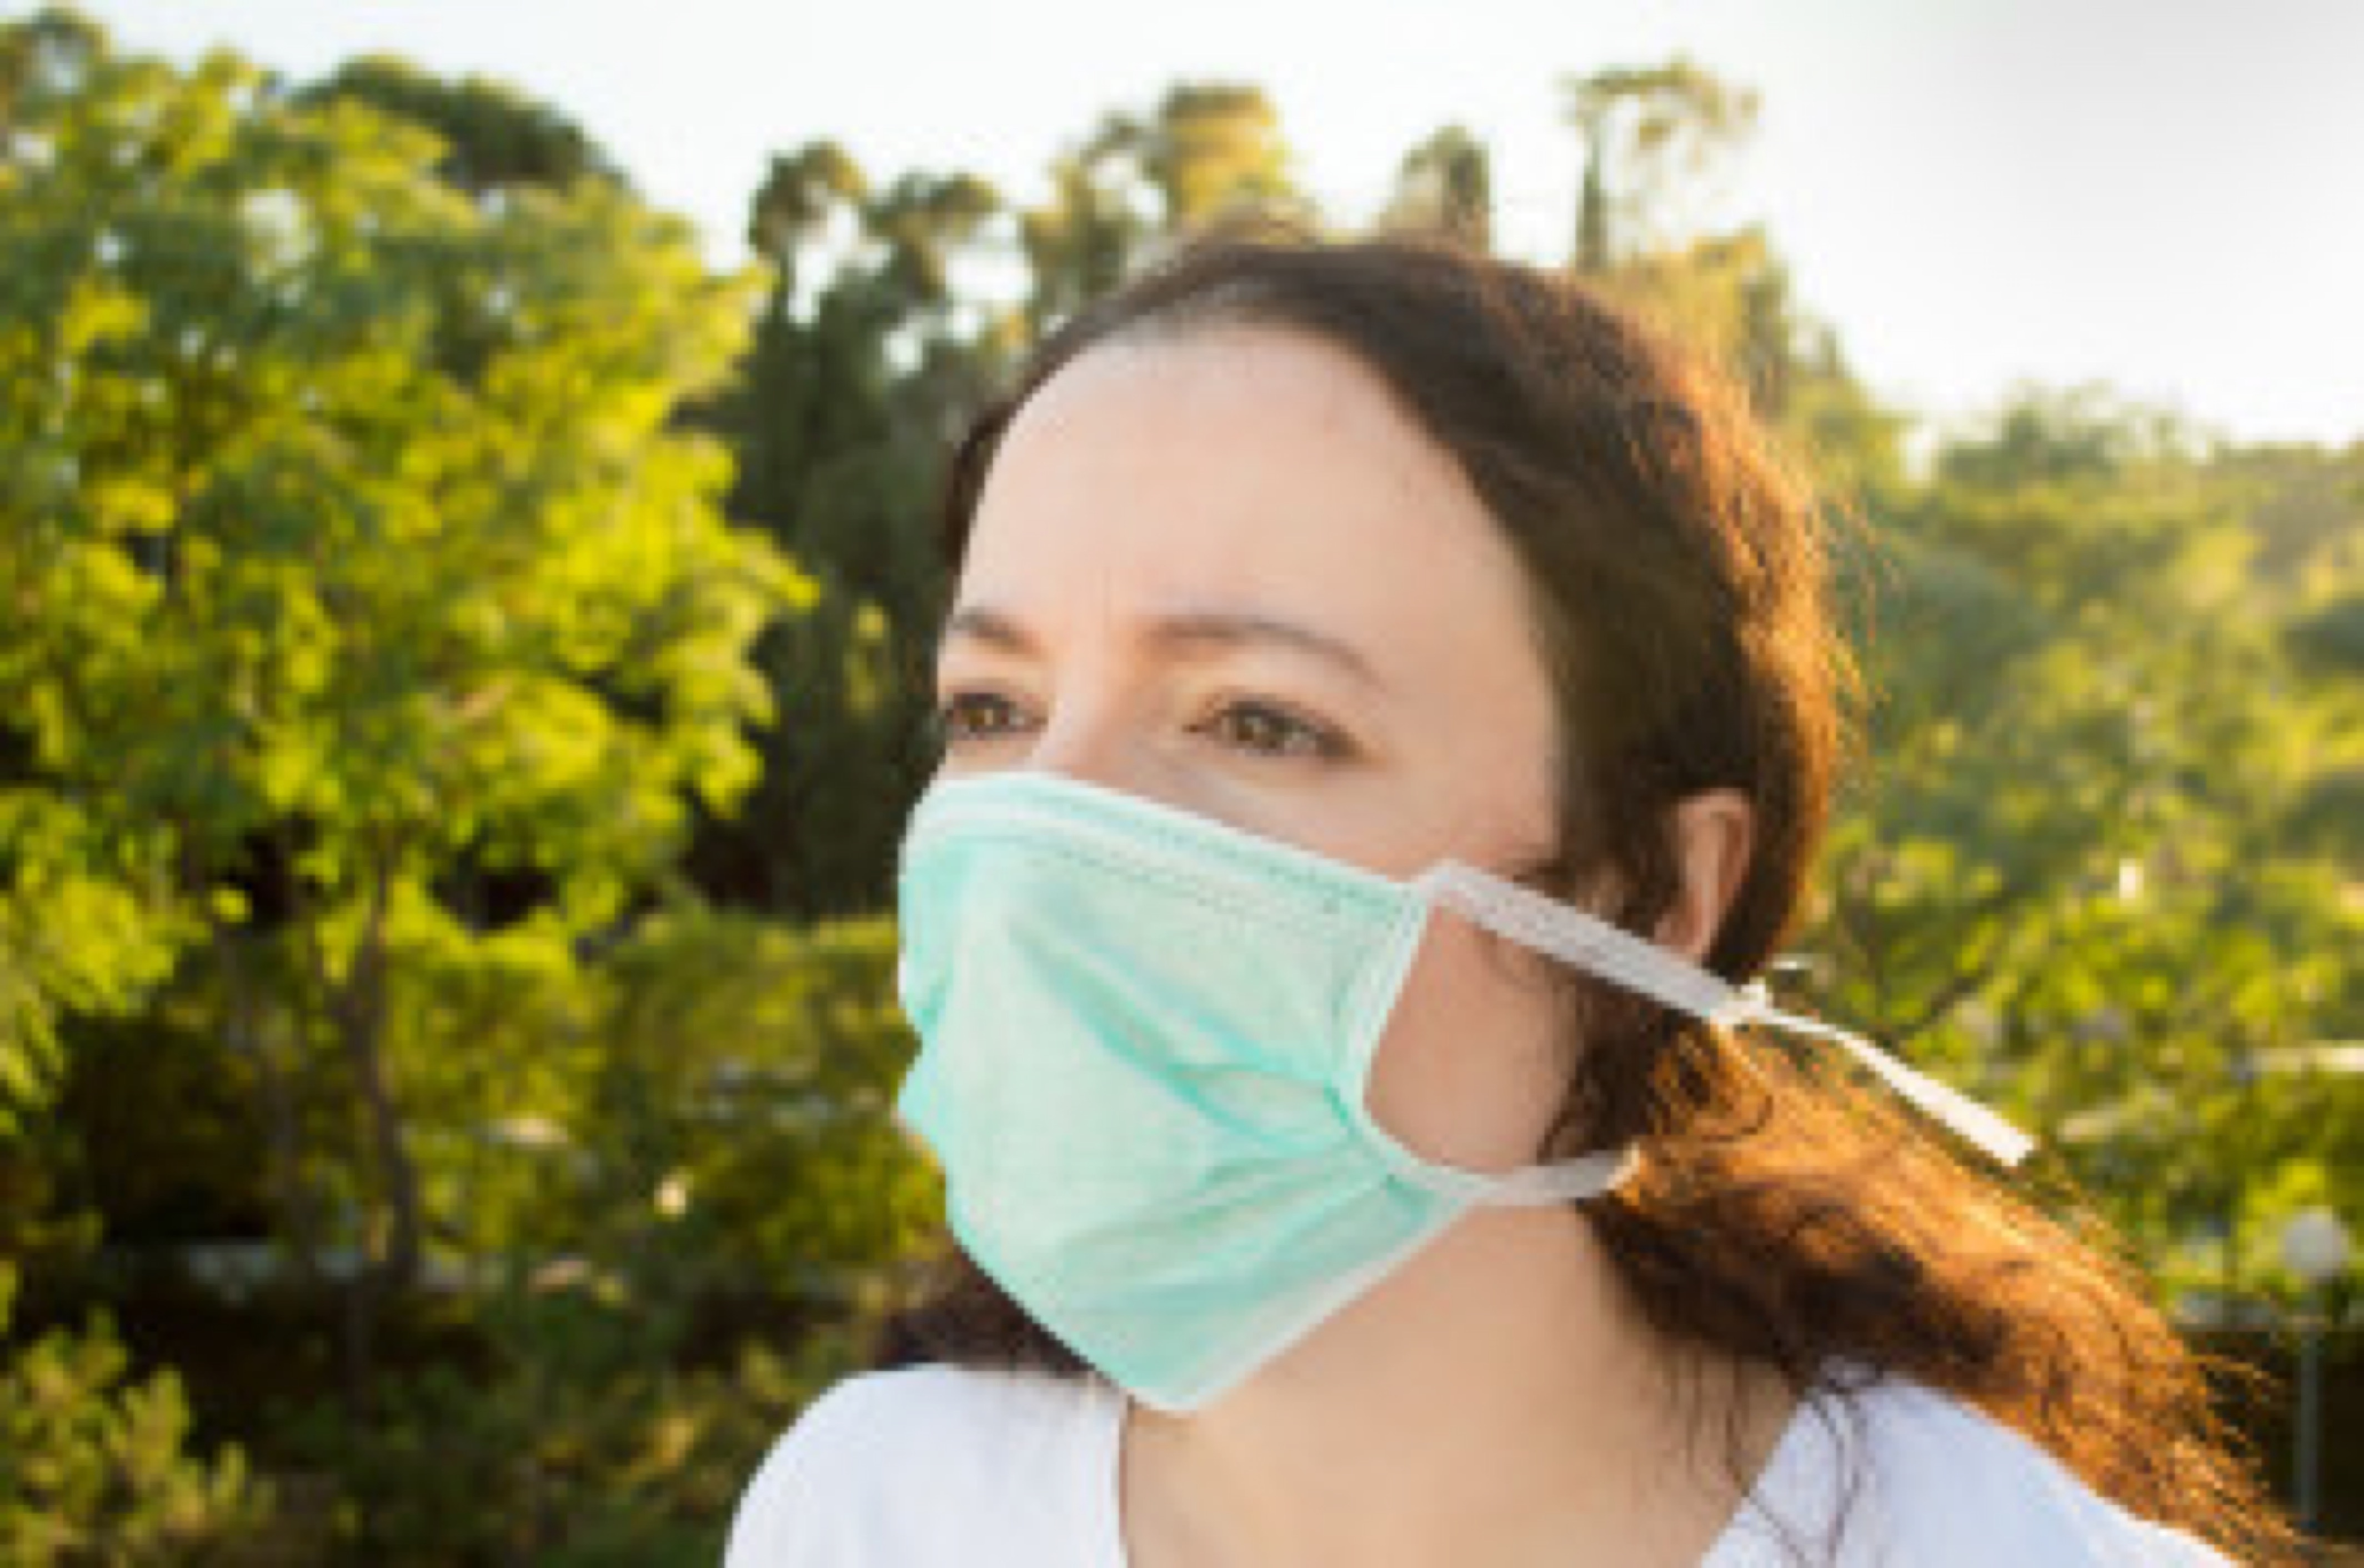 close up of an unhappy woman wearing a face mask to deal with virus or pollution